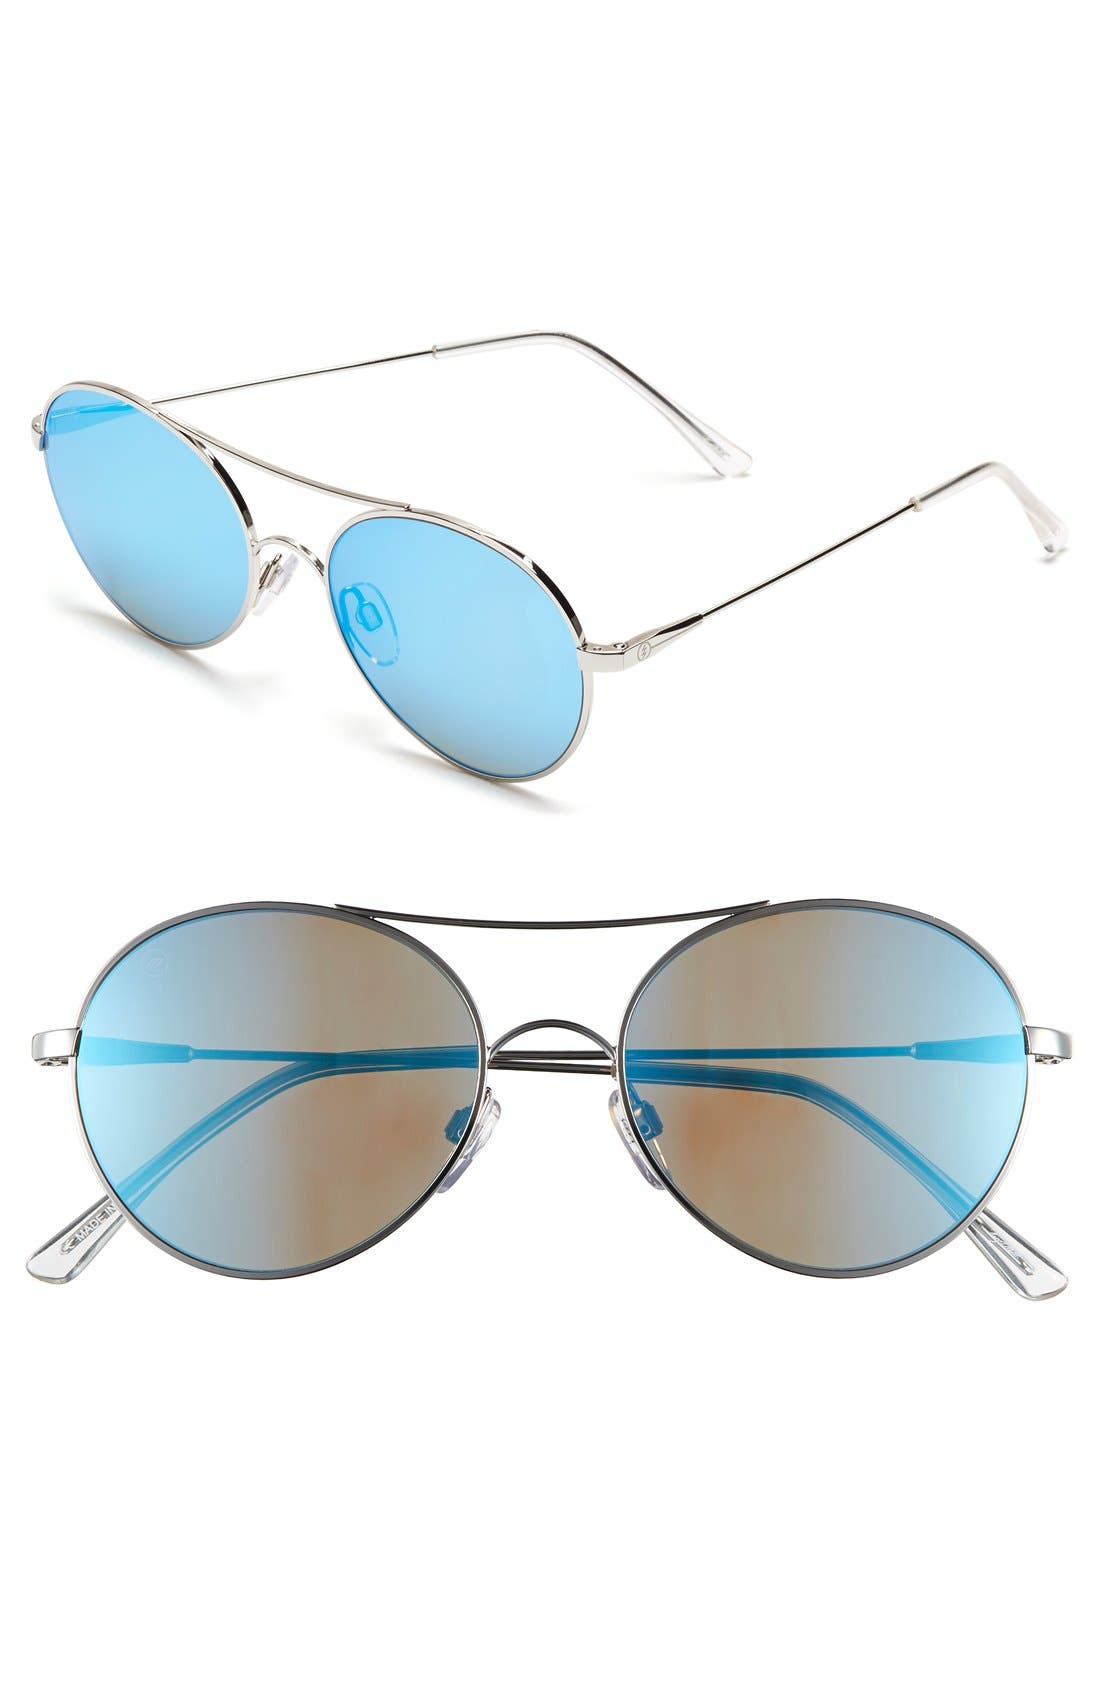 'Huxley' 53mm Round Sunglasses,                             Main thumbnail 1, color,                             Platinum/ Grey Blue Chrome